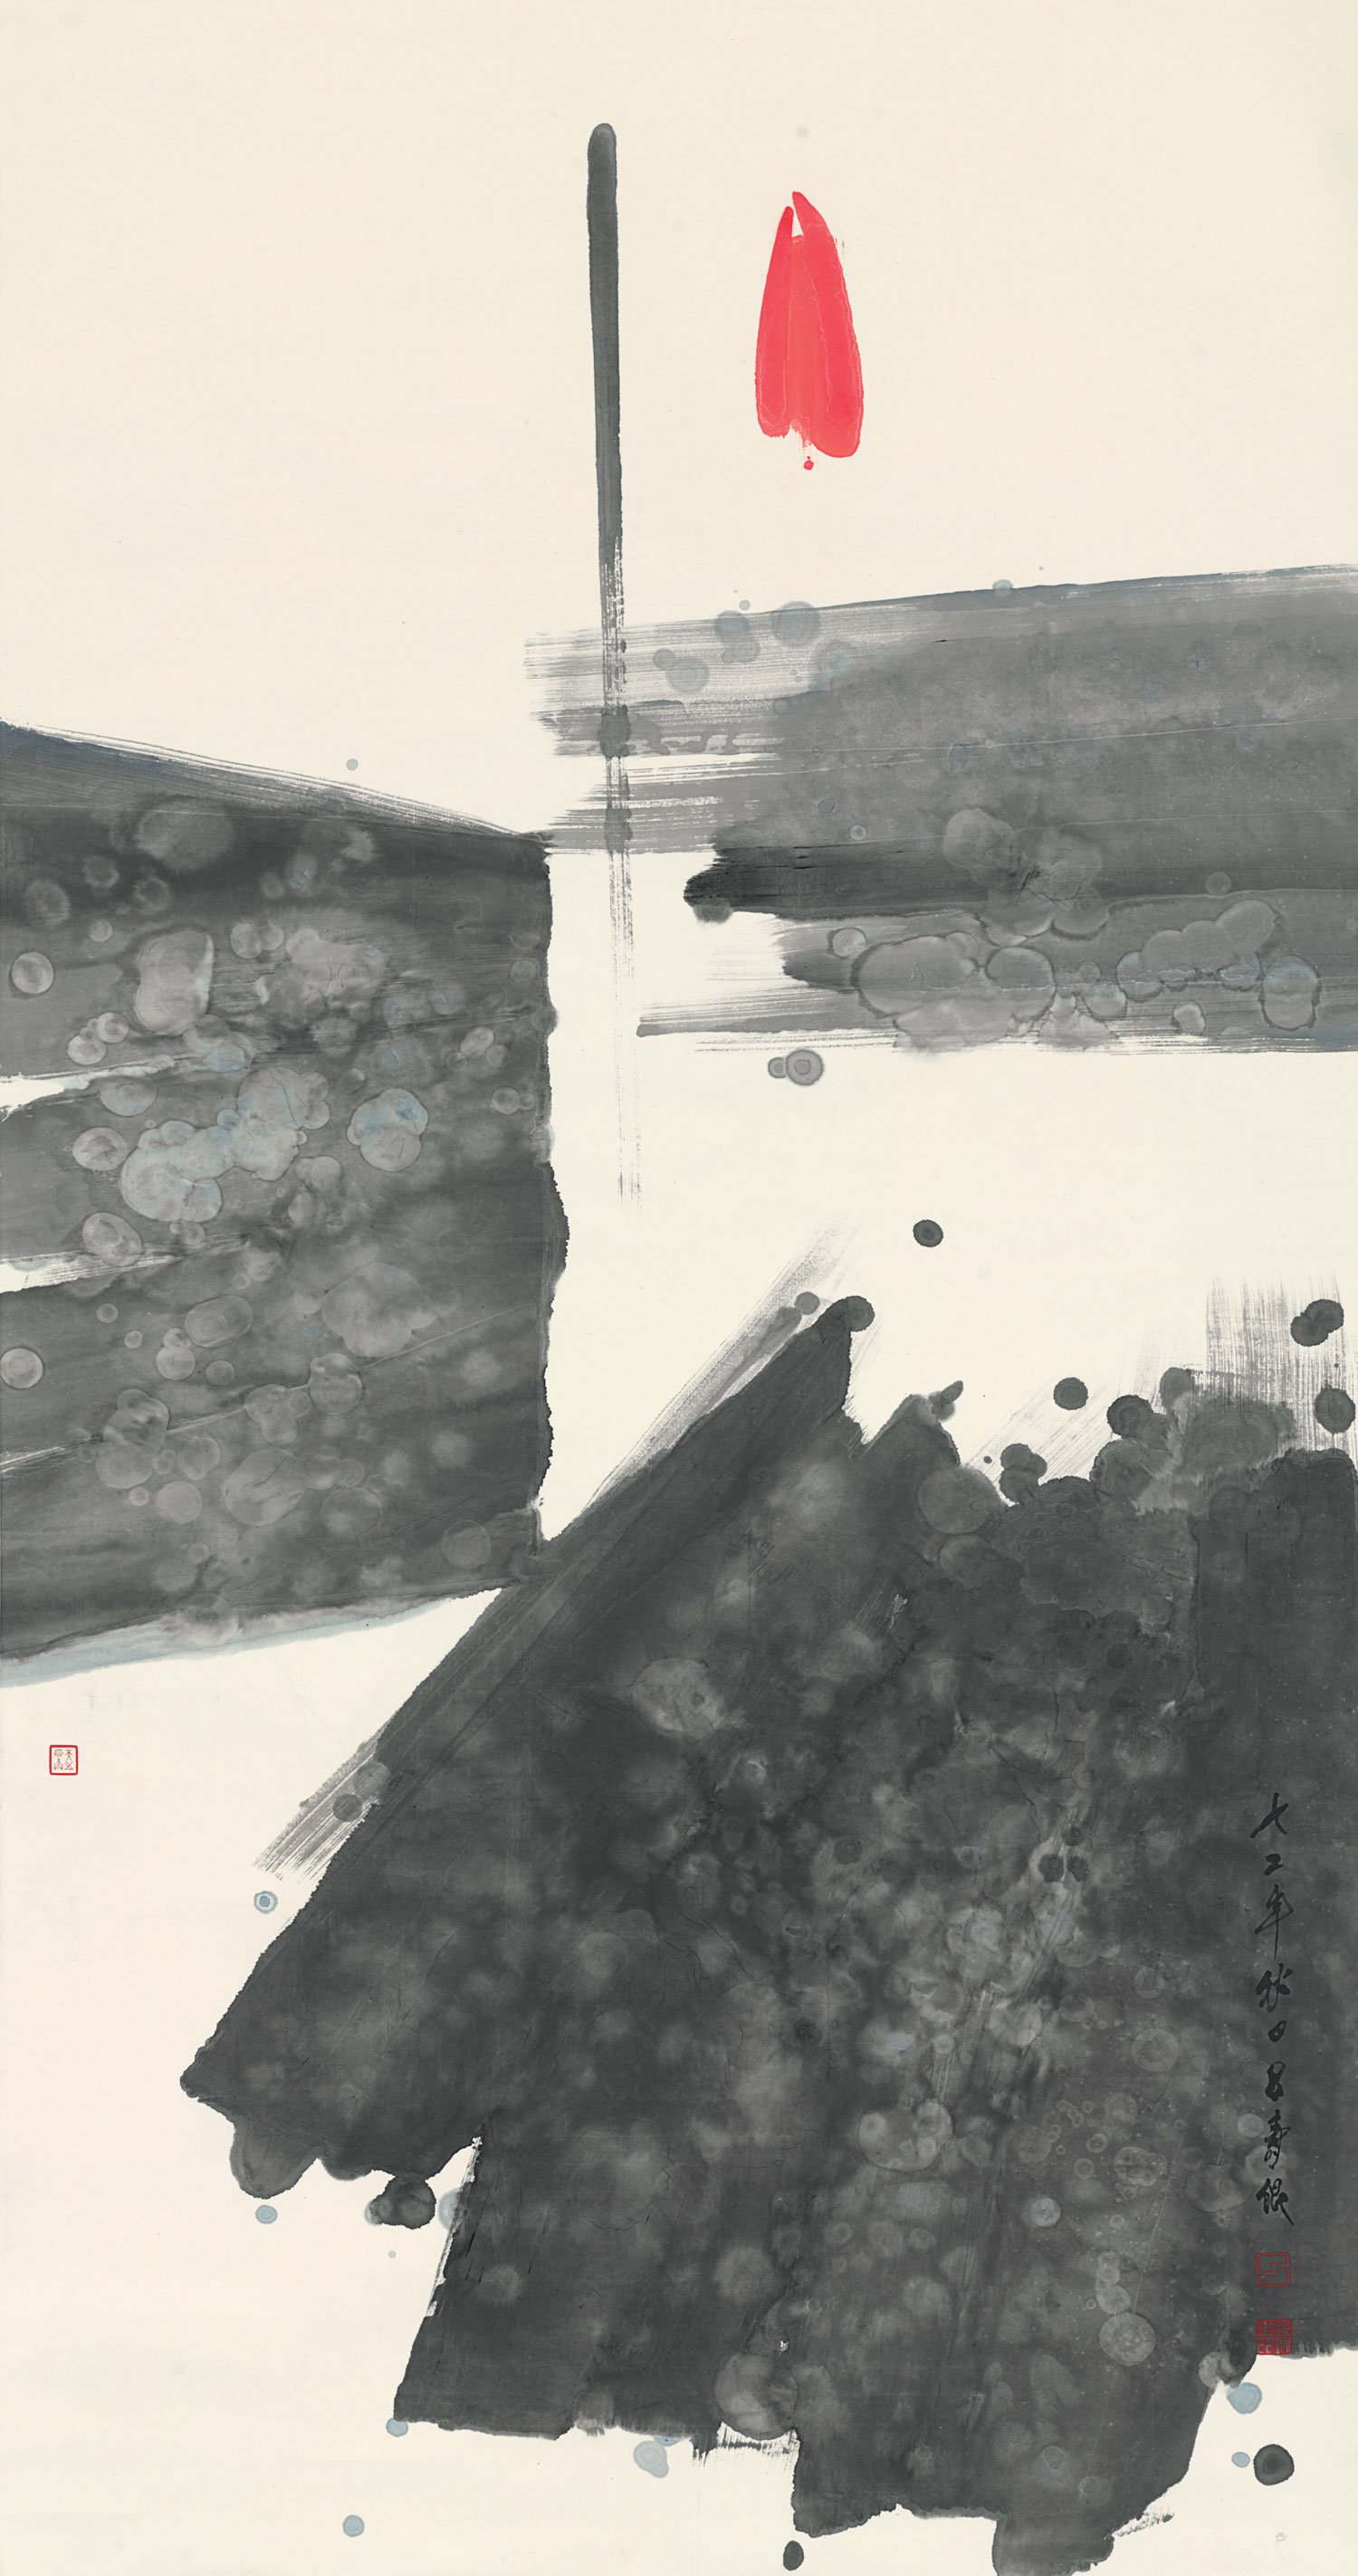 Lotus (1972) by Lu Shoukun (1919-1975)Lot 876: Christie's Fine Chinese PaintingsMedium: Hanging scroll. Ink and color on paper (1972) 72 ¼ x 37 7/8 in.Estimate: US$30,000 – $40,000